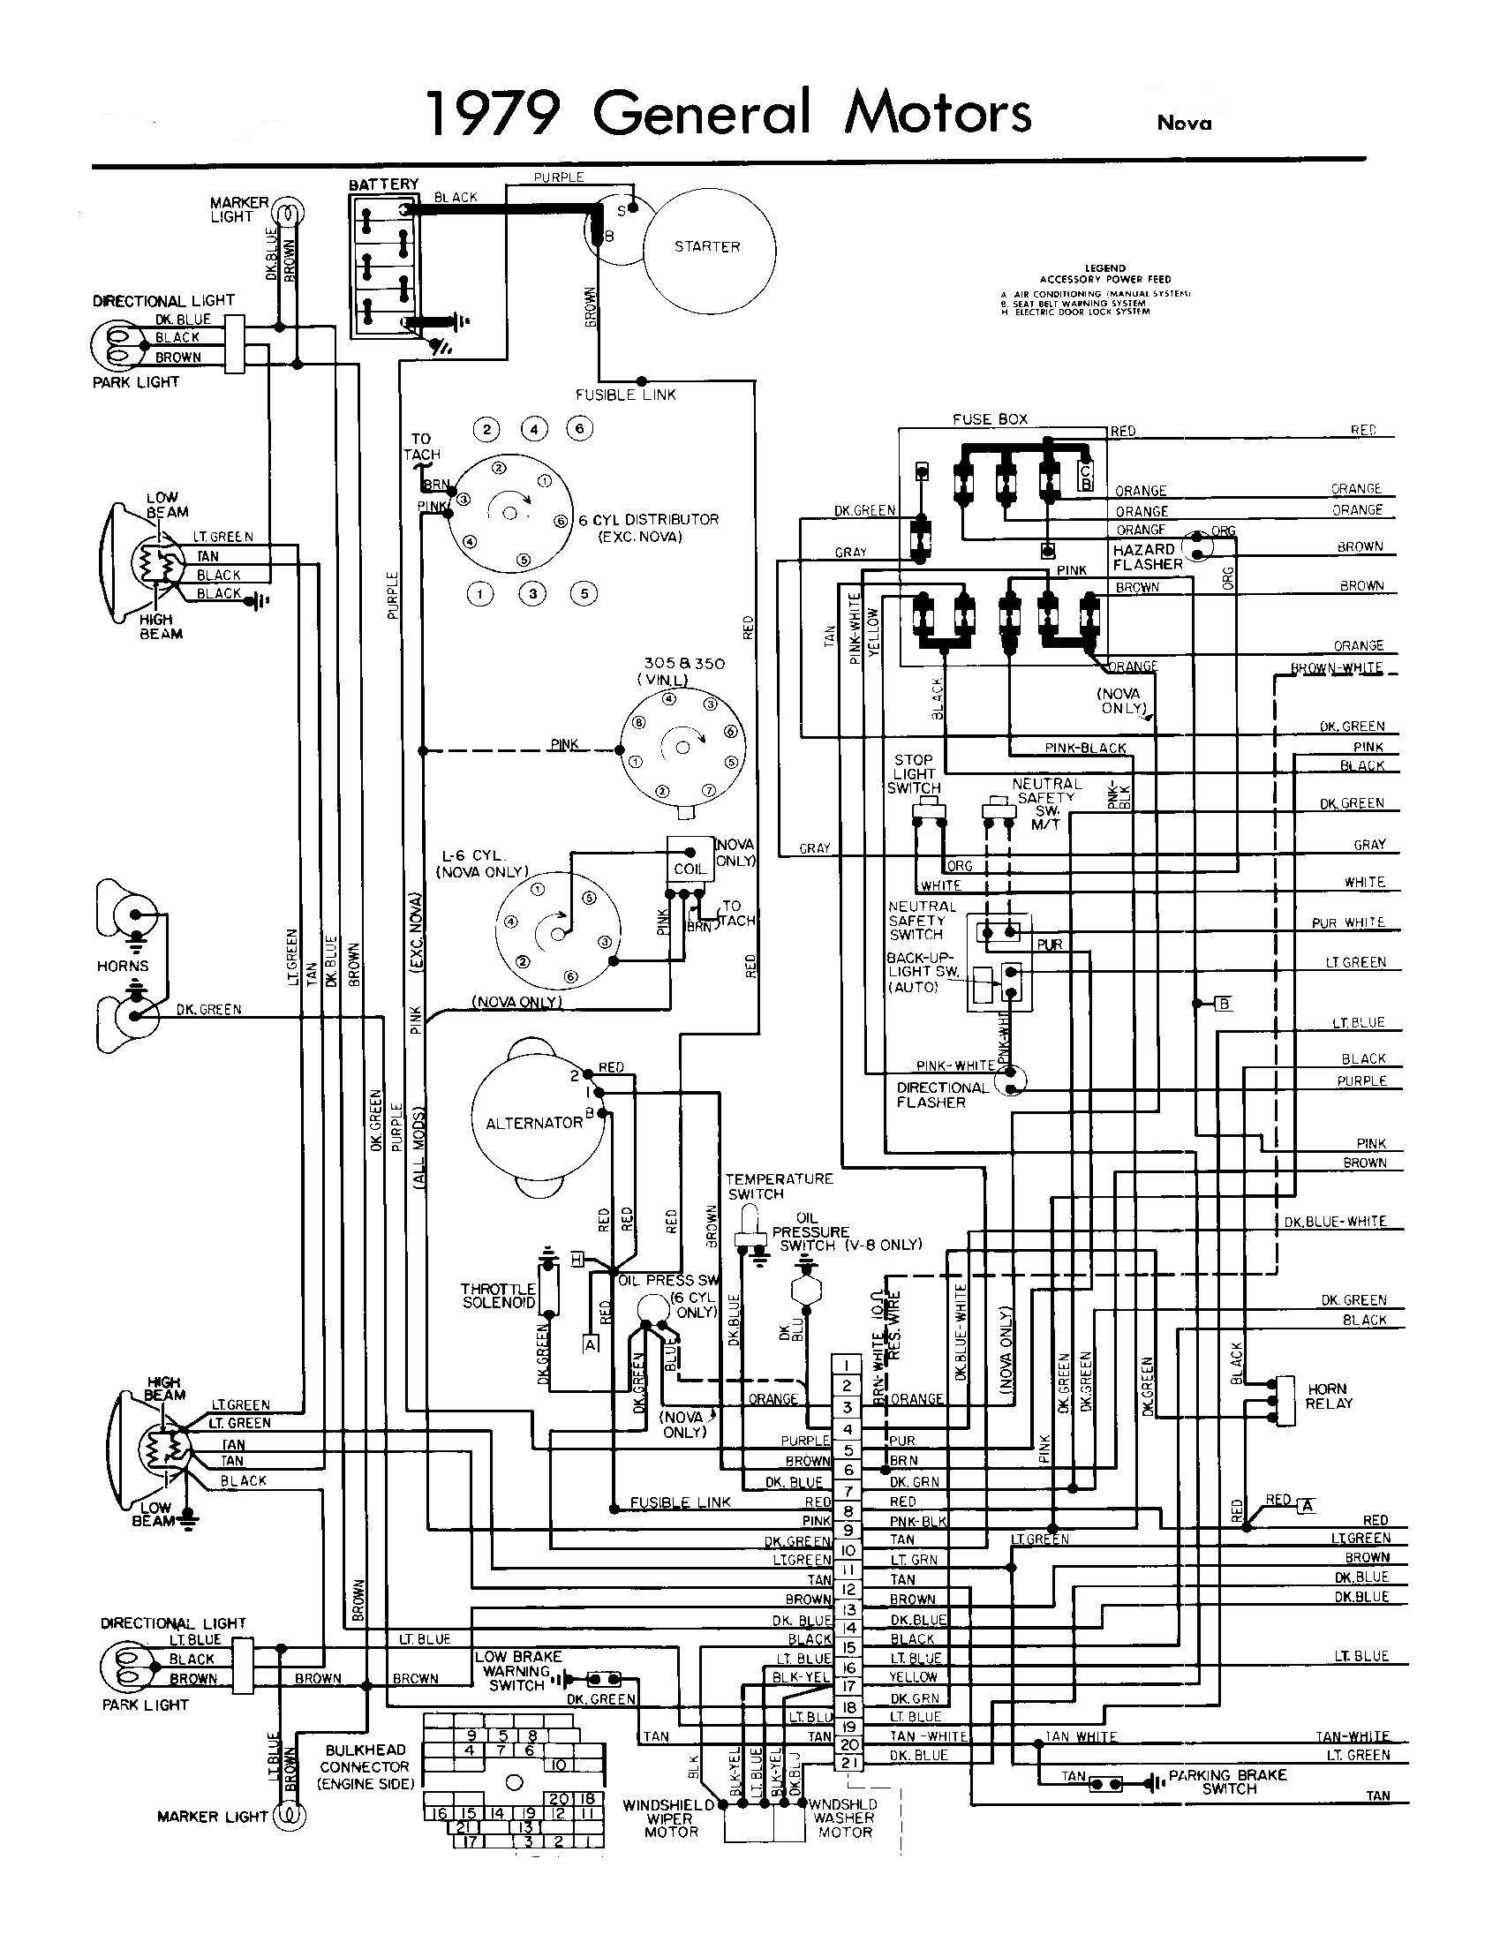 1979 Chevy Truck Radio Wiring Diagram 1979 Gmc Truck Wiring Diagram Wiring Diagram Paper Of 1979 Chevy Truck Radio Wiring Diagram 1979 Gmc Truck Wiring Diagram Wiring Diagram Paper